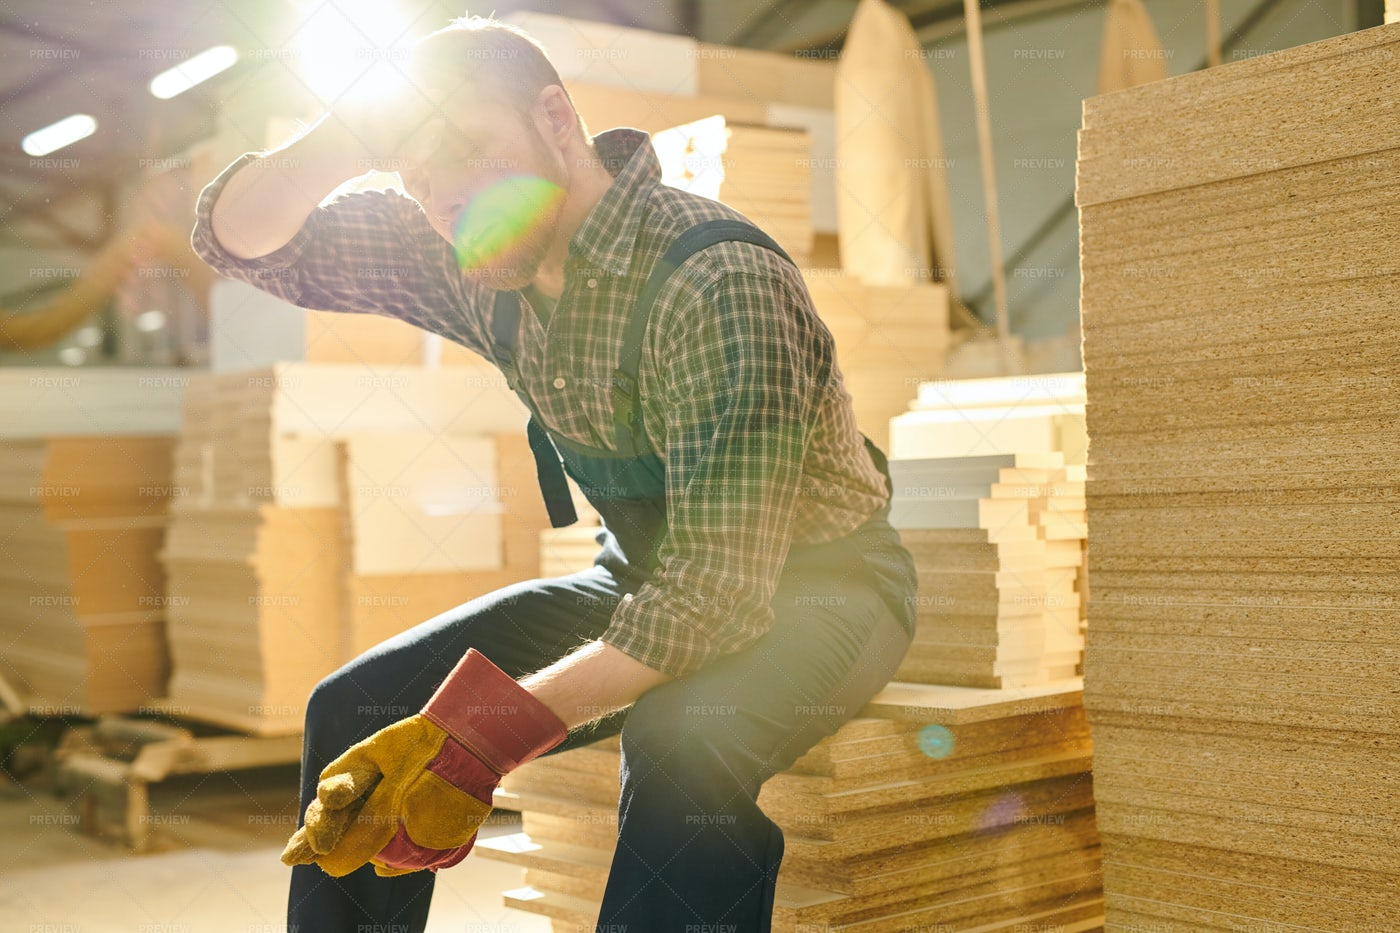 Exhausted Worker Wiping Sweat From...: Stock Photos